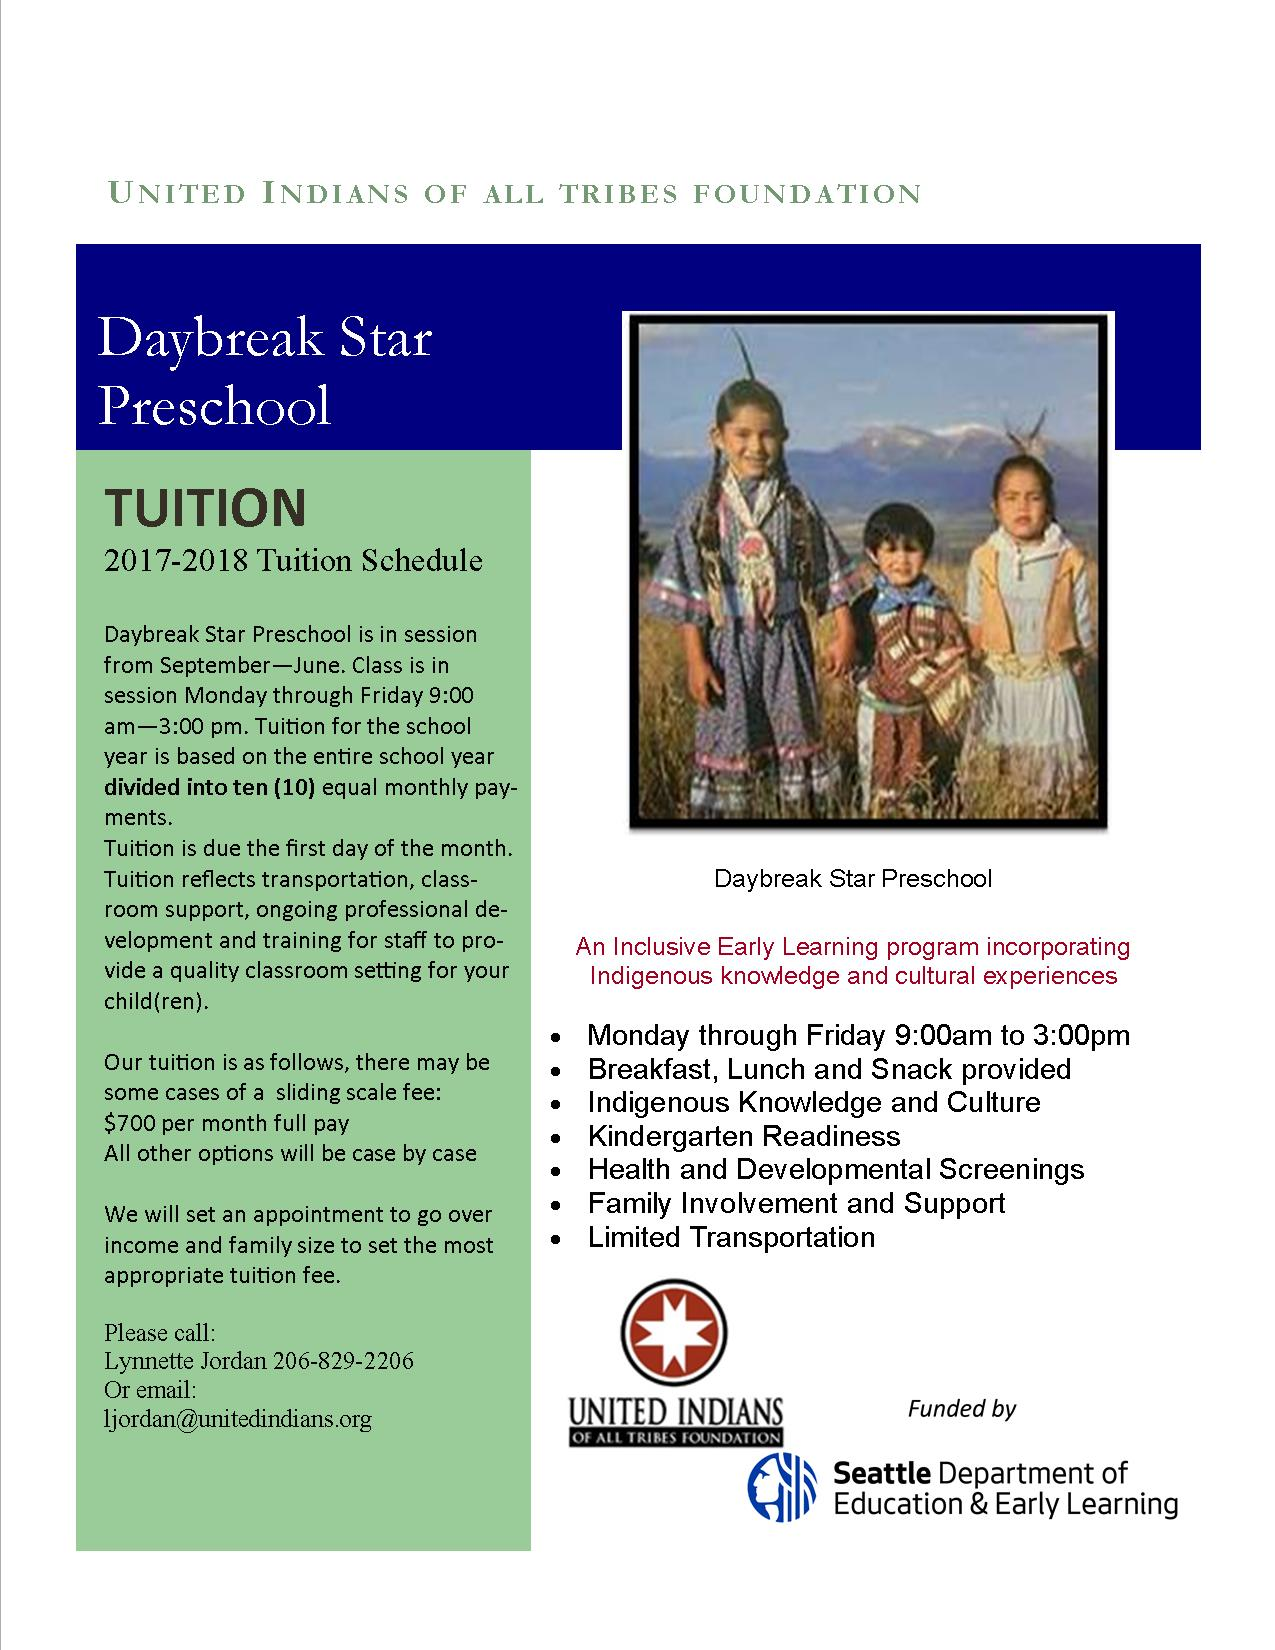 Daybreak Star Preschool tuition 2017-2018 (2)